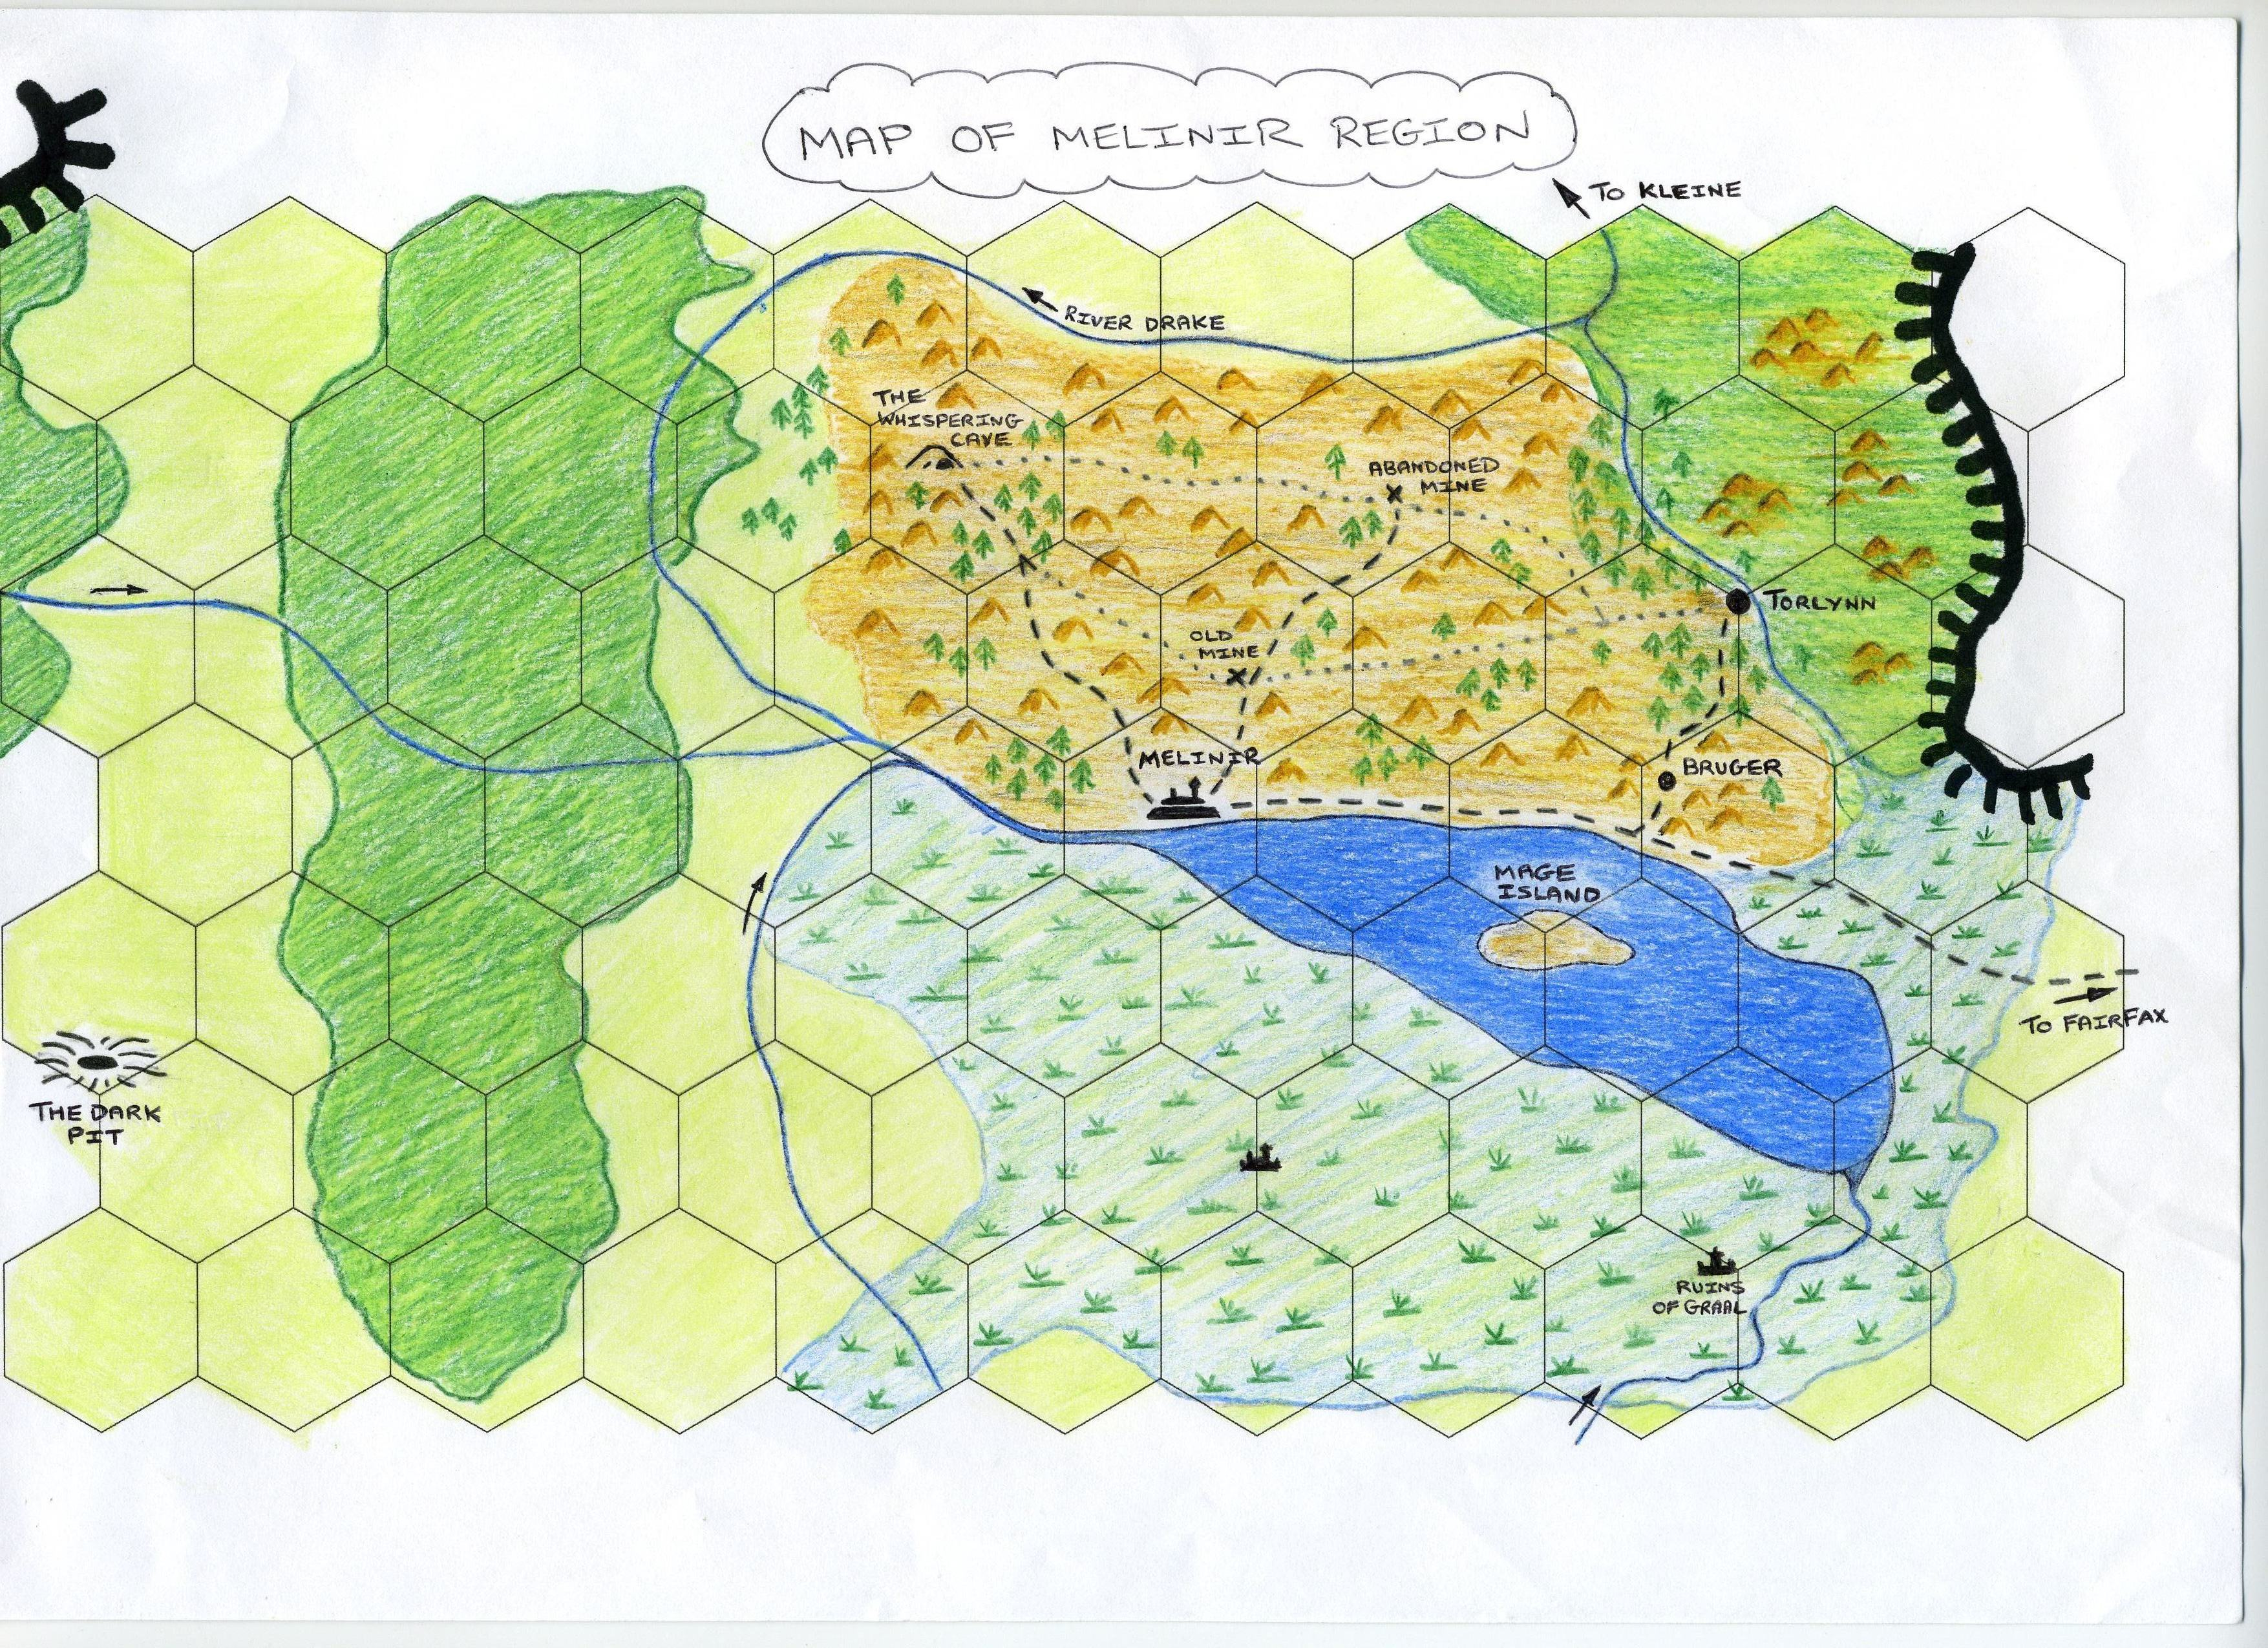 Map of the melinor region to draw the map i placed a clear hexagonal each hex was one inch template over the official map which aided me in making the map accurate in scale gumiabroncs Gallery